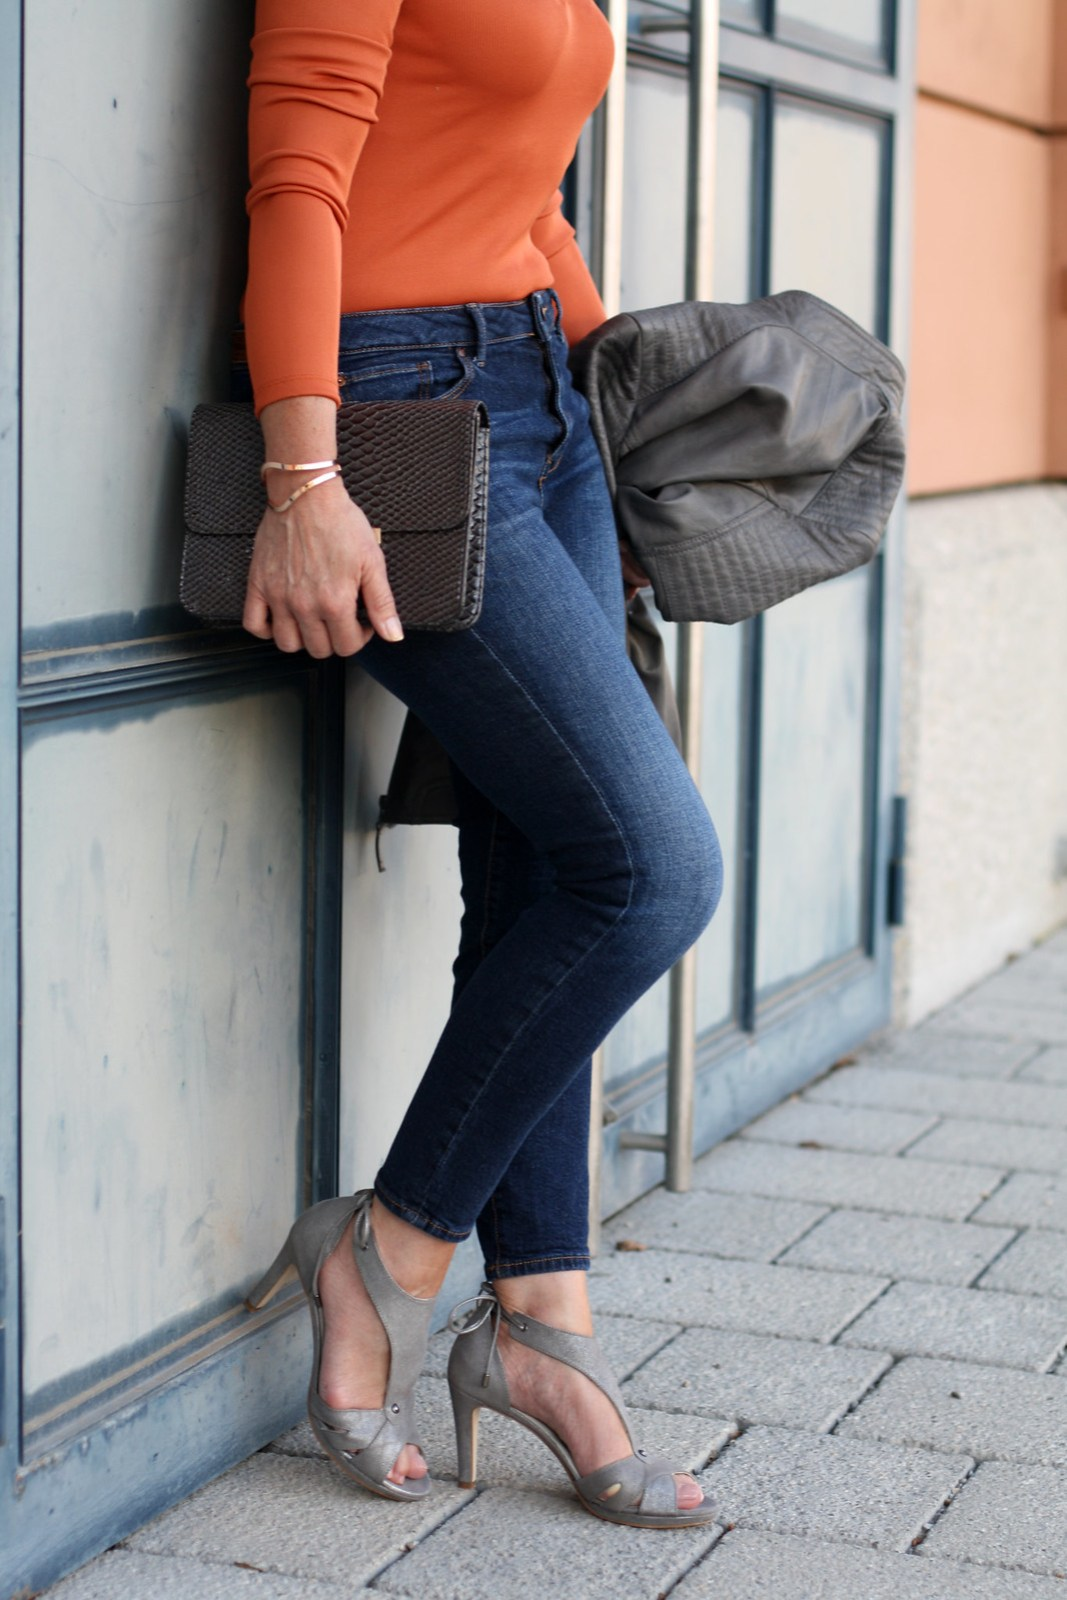 Skinny Jeans Leather Jacket Calla Shoes Sandals LadyofStyle 2